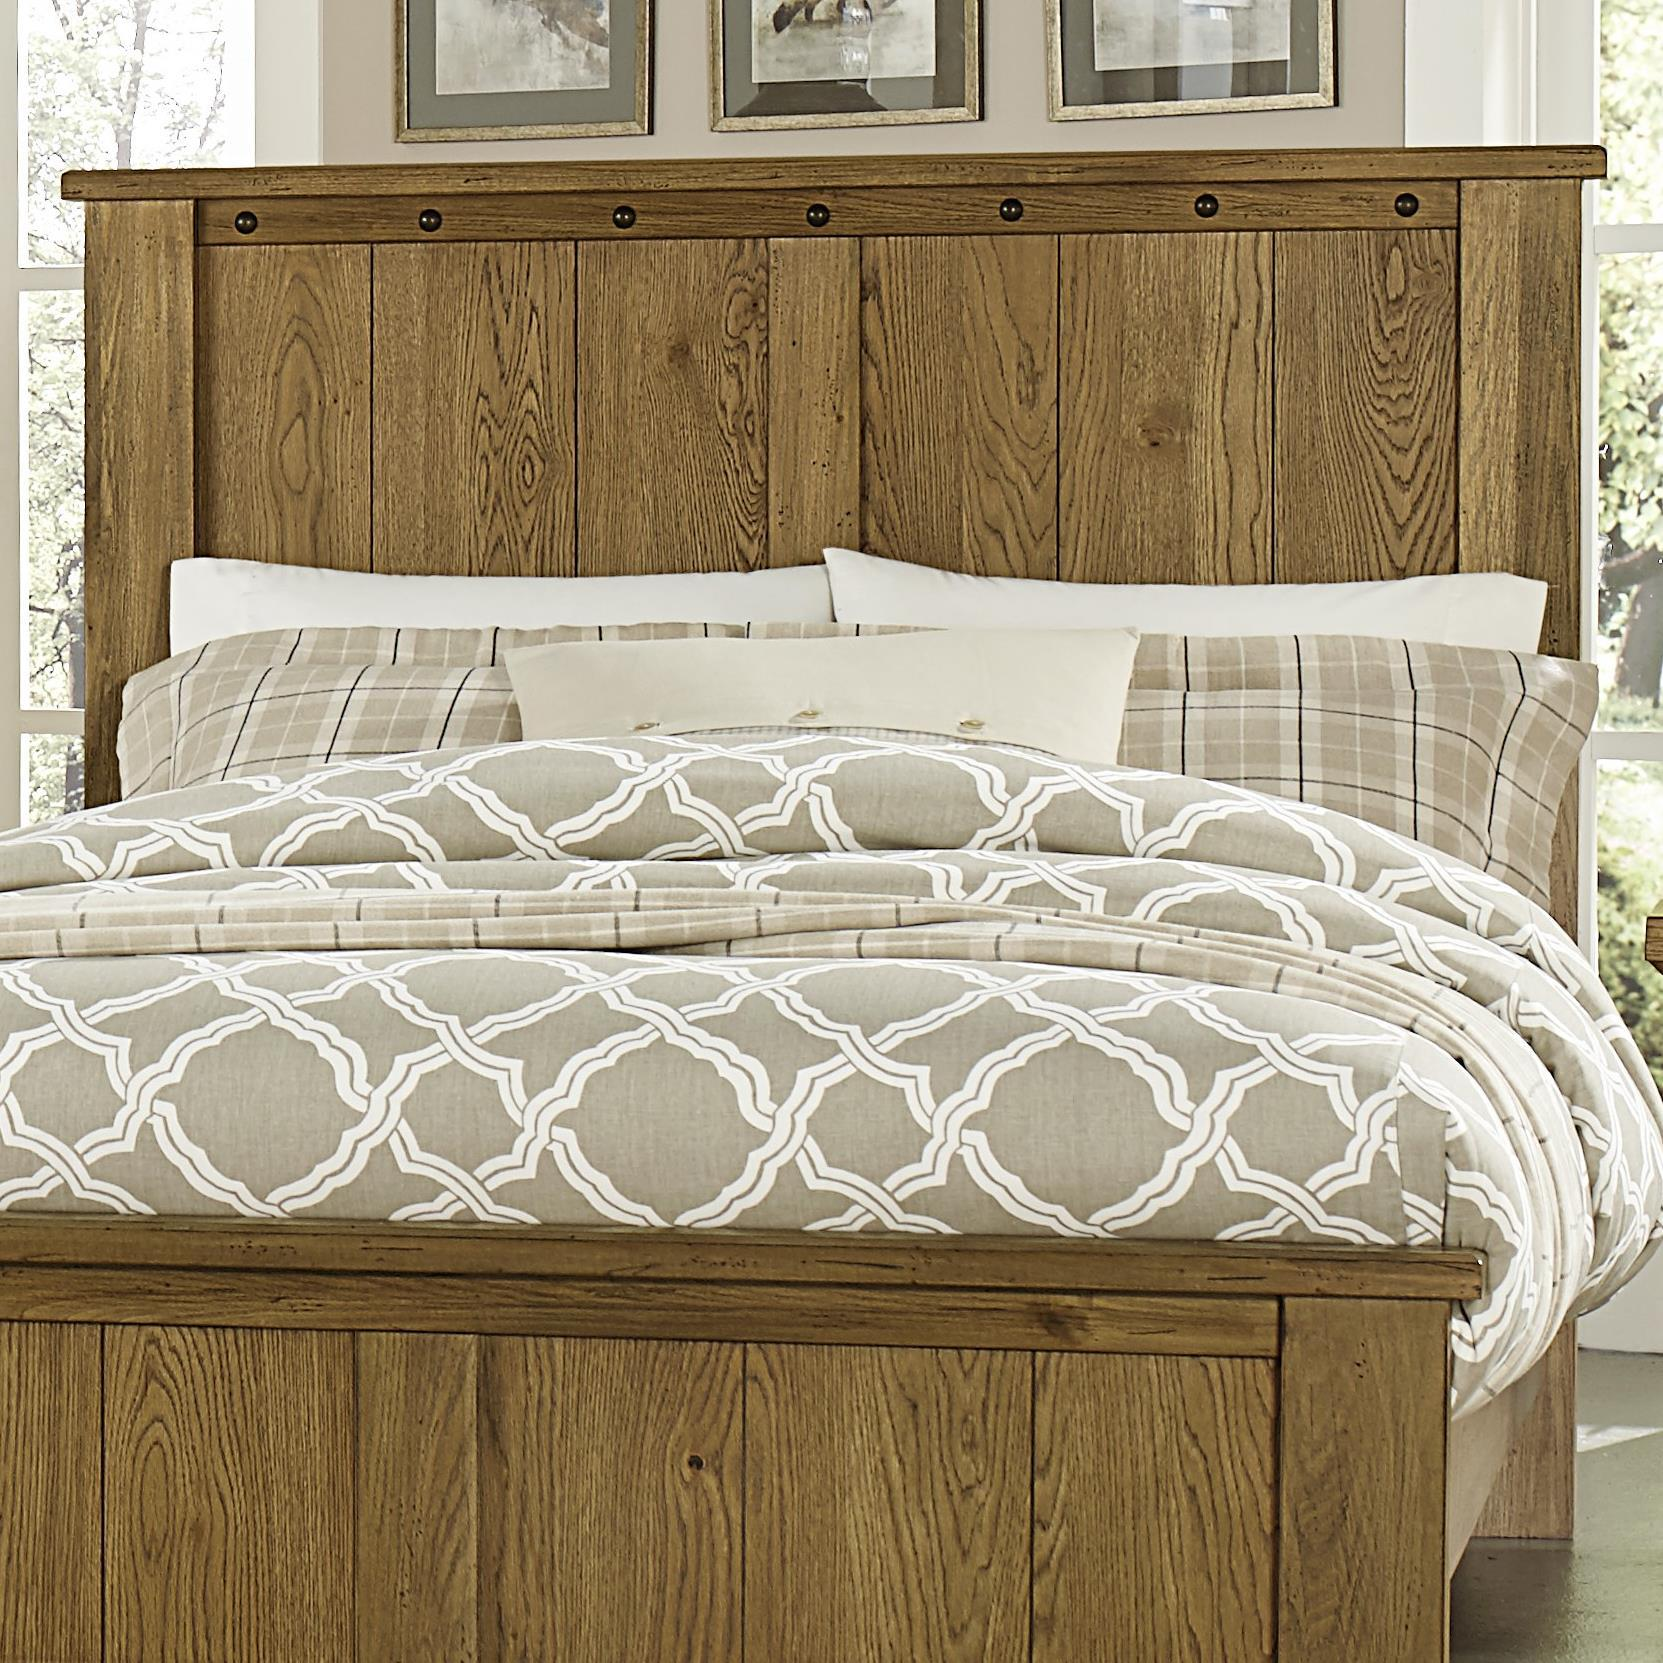 Vaughan Bassett Collaboration Full/Queen Panel Headboard - Item Number: 614-558